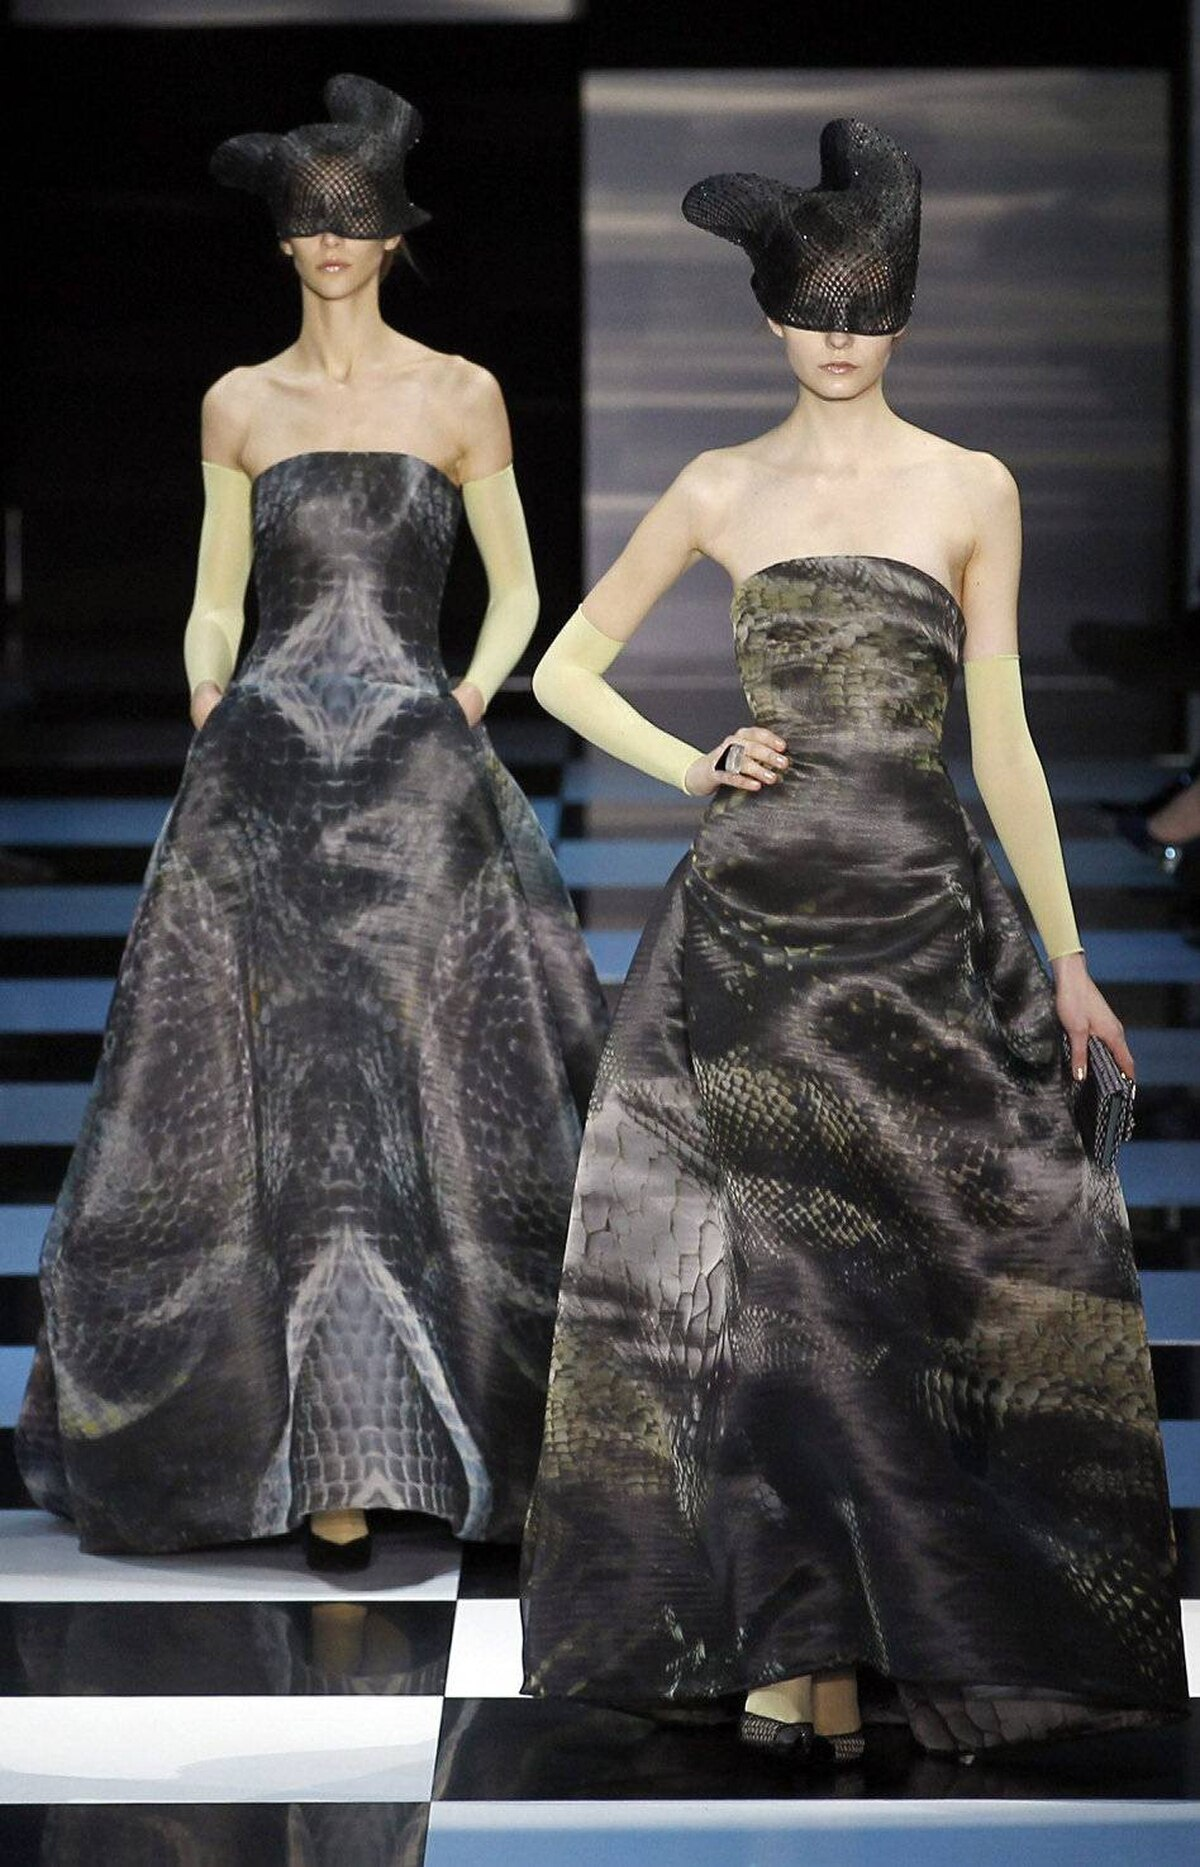 This is not the first time snakes have appeared on the runway for spring (and no, they were not on Lagerfeld's plane). The serpent motif also made an appearance in Alber Elbaz's ready-to-wear collection for Lanvin. And yet, according to the Chinese calendar, it's actually the Year of the Dragon.